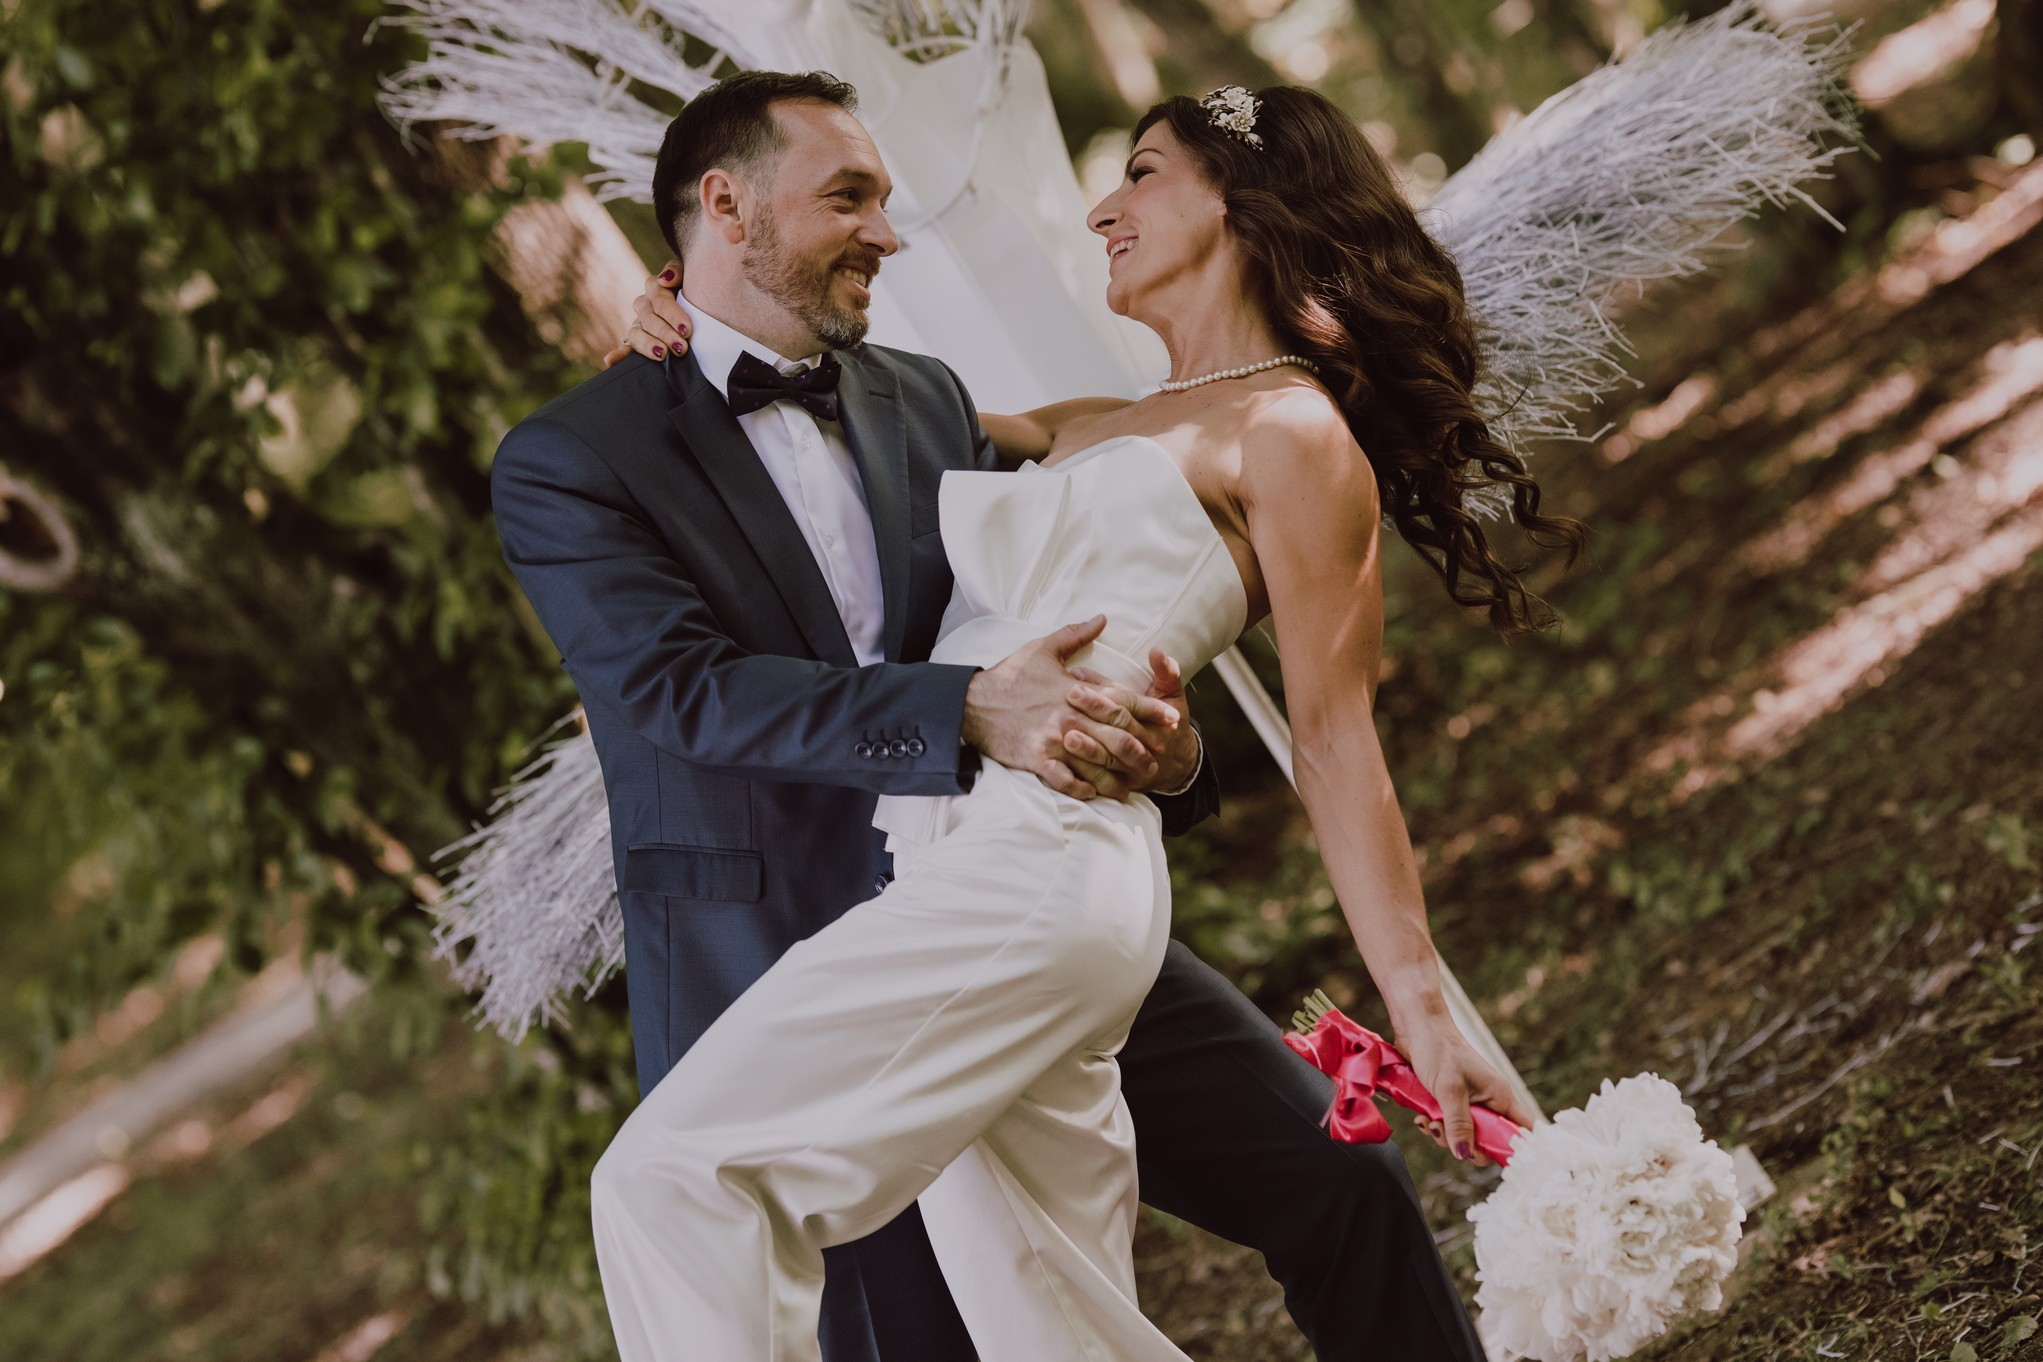 Beautiful newlyweds are hugged in nature as she holds a wedding bouquet